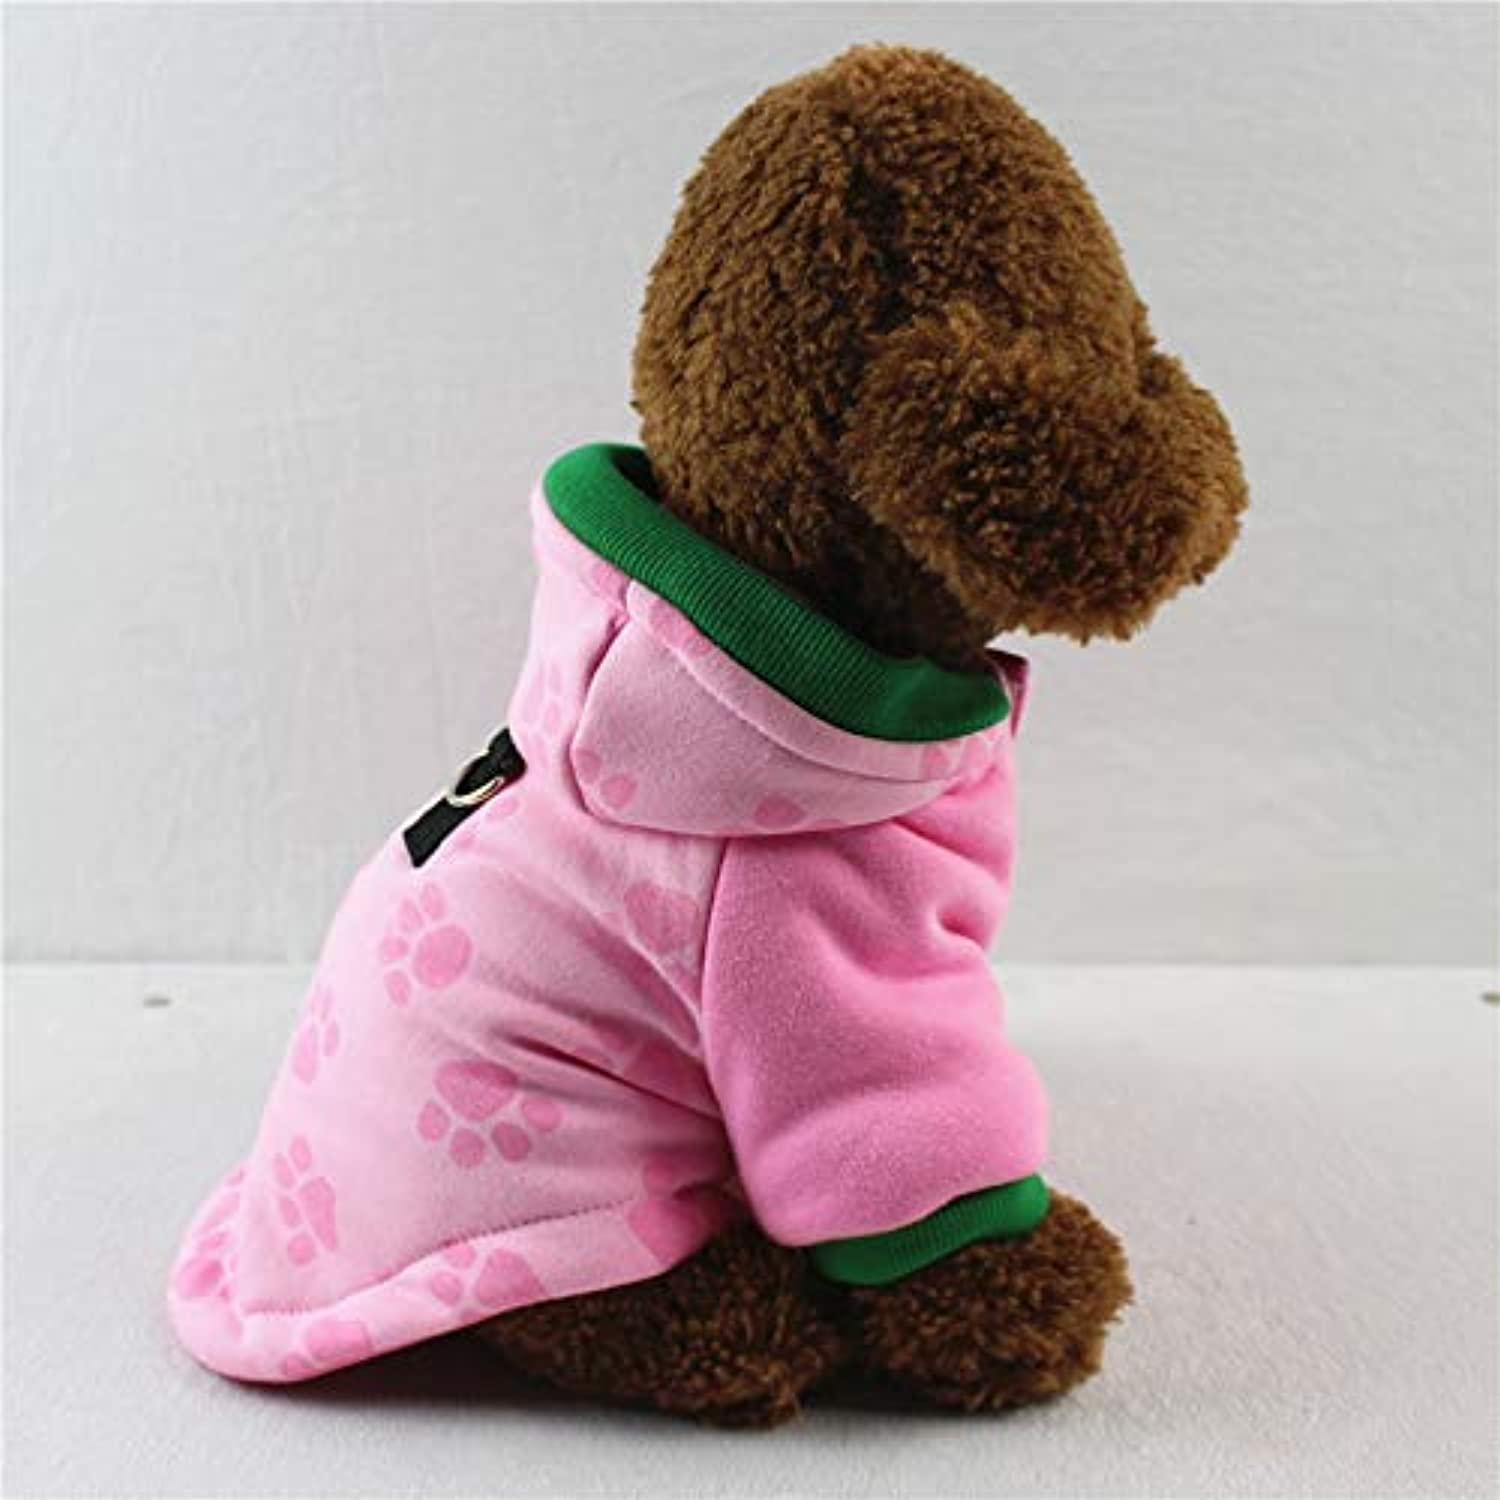 HSDDA Party Pet Costume Pet Supplies Misc Autumn and winter pet clothes thick quilted winter dog warm autumn and winter coat (color   Pink, Size   S) Pet Uniform (color   Pink, Size   L)